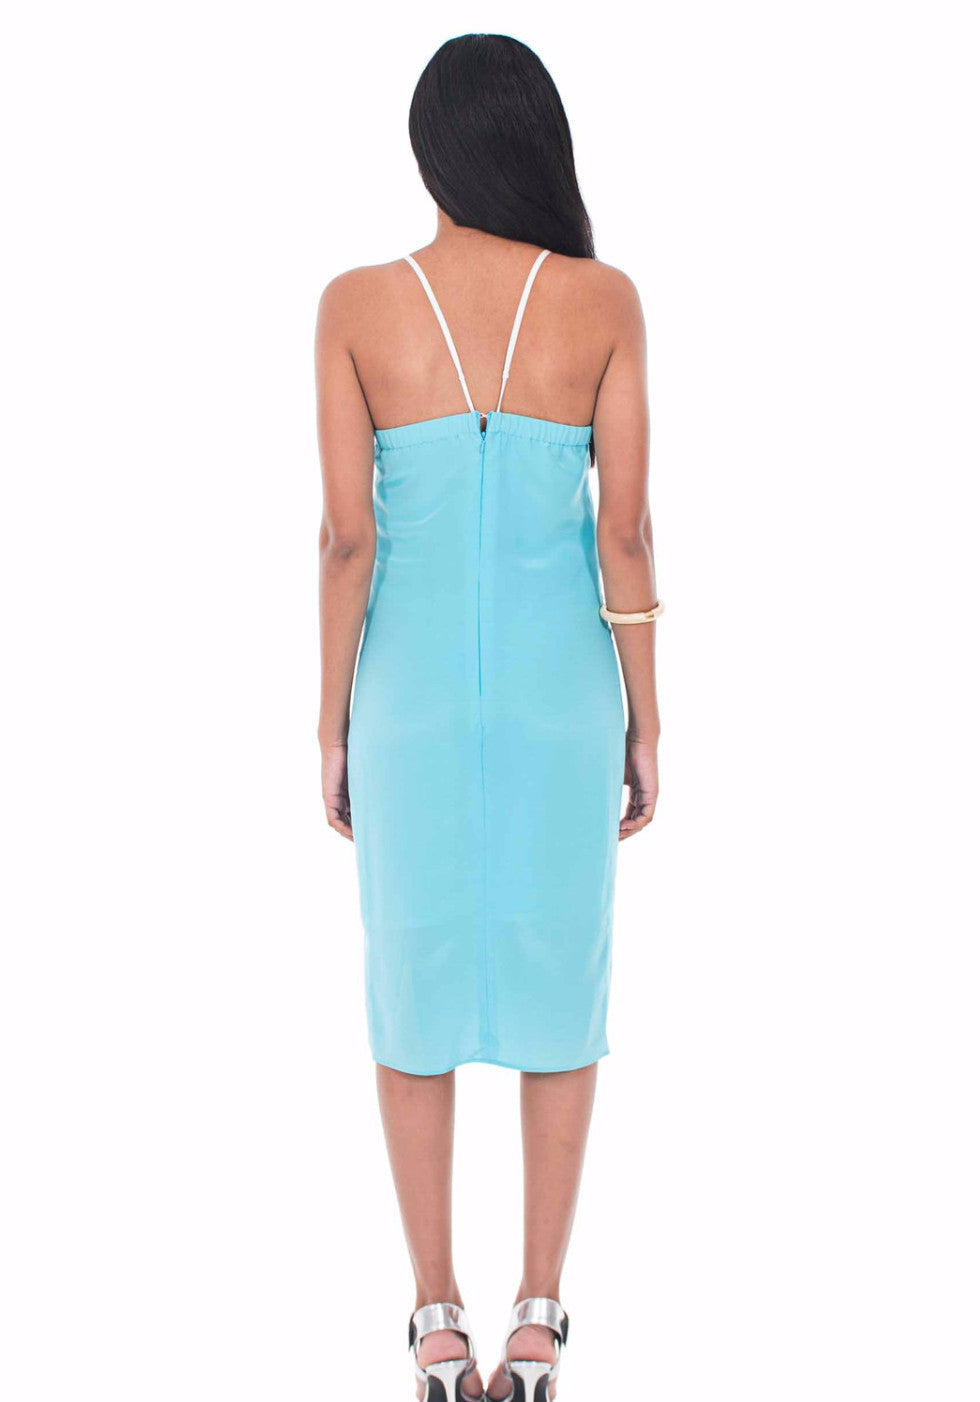 Entwined Midi Slip Dress by Isy B. Design - Back View on Model